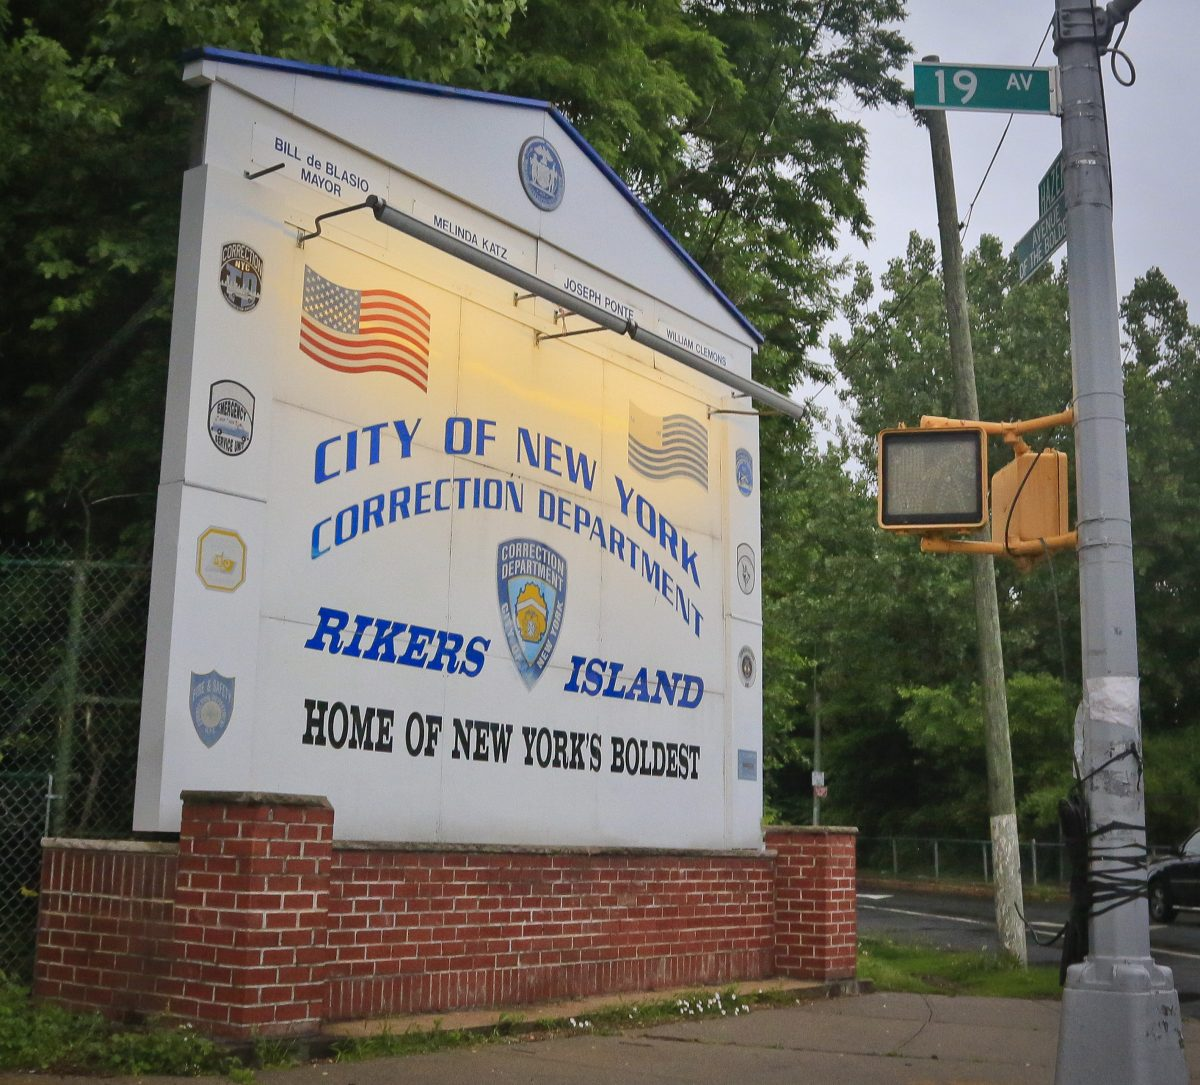 The main sign for the Rikers Island jail in the Queens borough of New York on June 11, 2014. New York Mayor Bill de Blasio plans to announce his $130 million, four-year plan to overhaul how the nation's most populous city deals with mentally ill and drug-addicted suspects, diverting many to treatment instead of jail. (AP Photo/Bebeto Matthews)